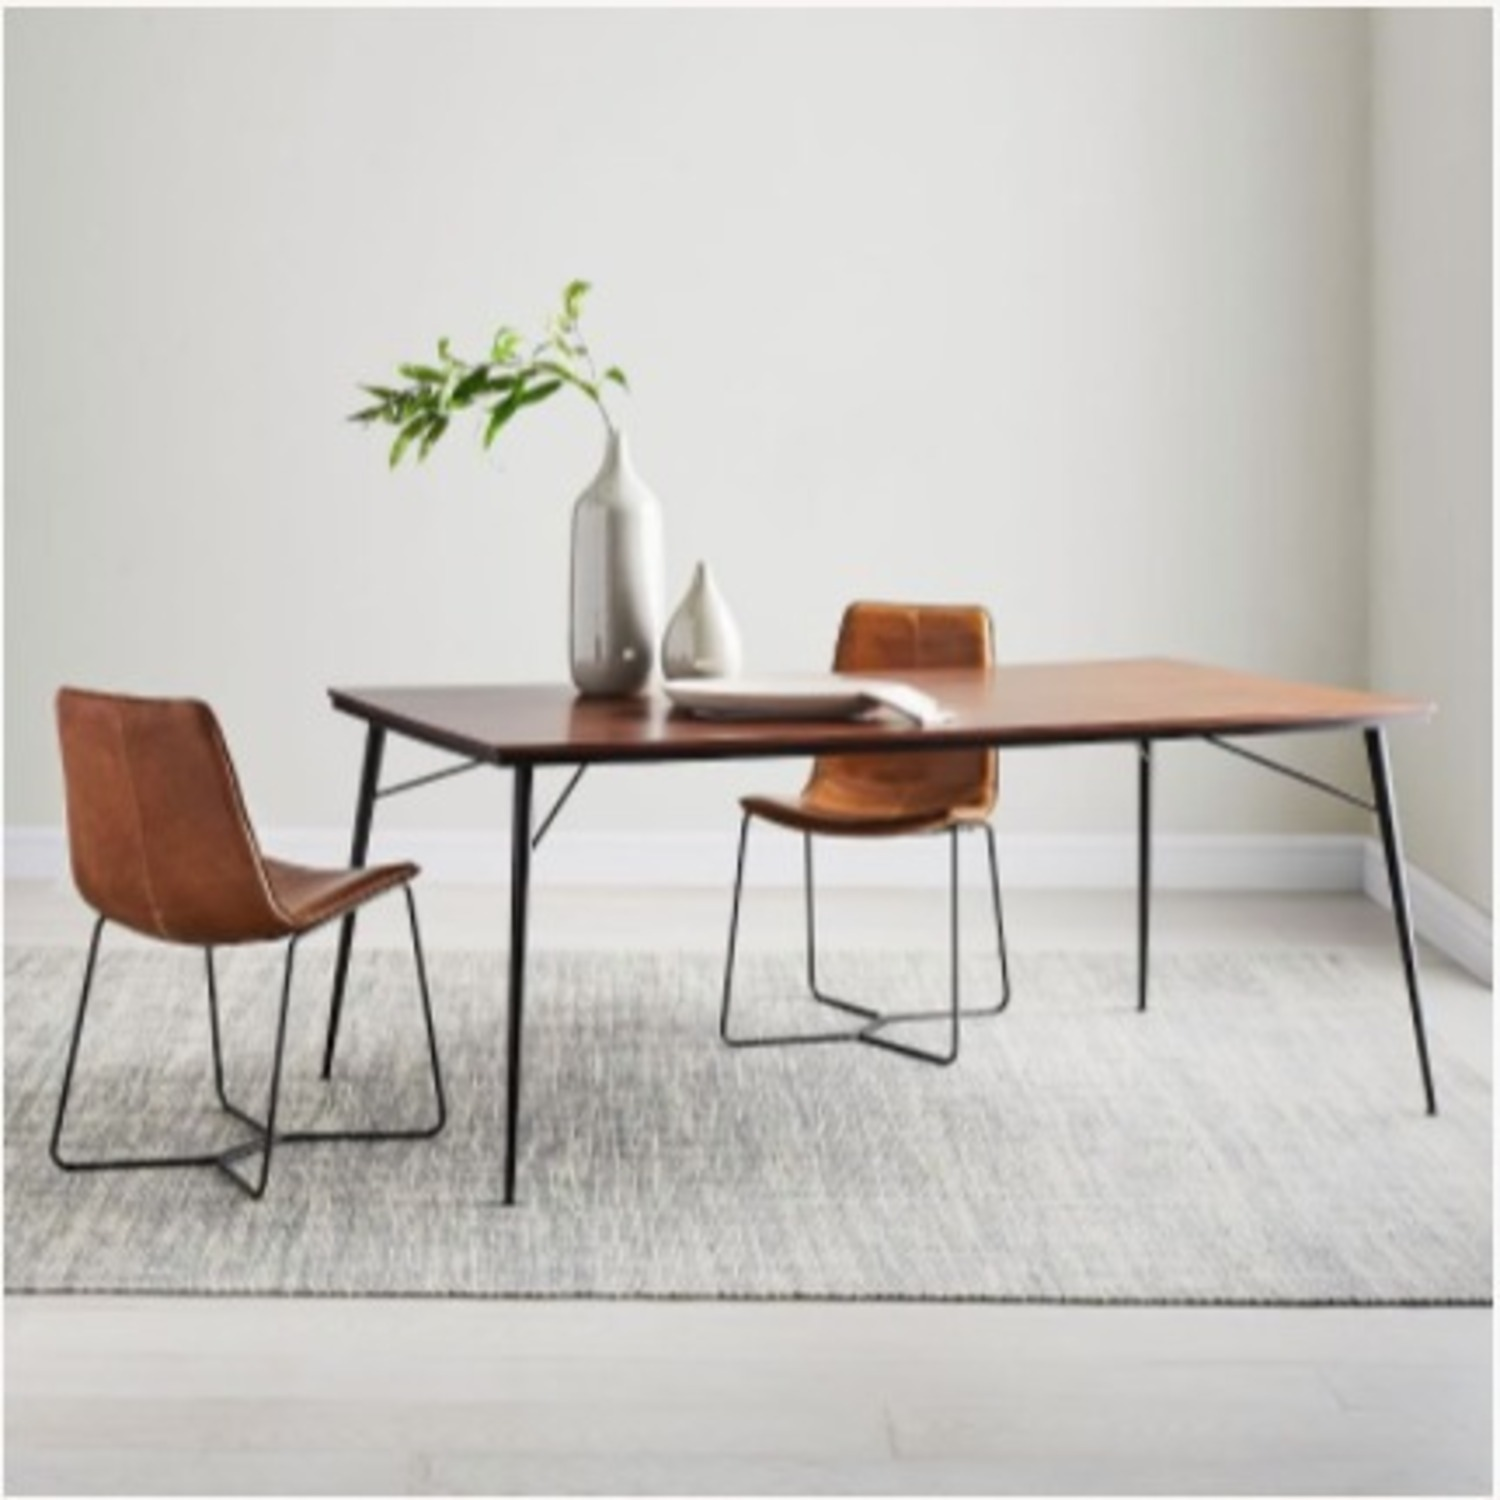 West Elm Self Pick up Table - image-2